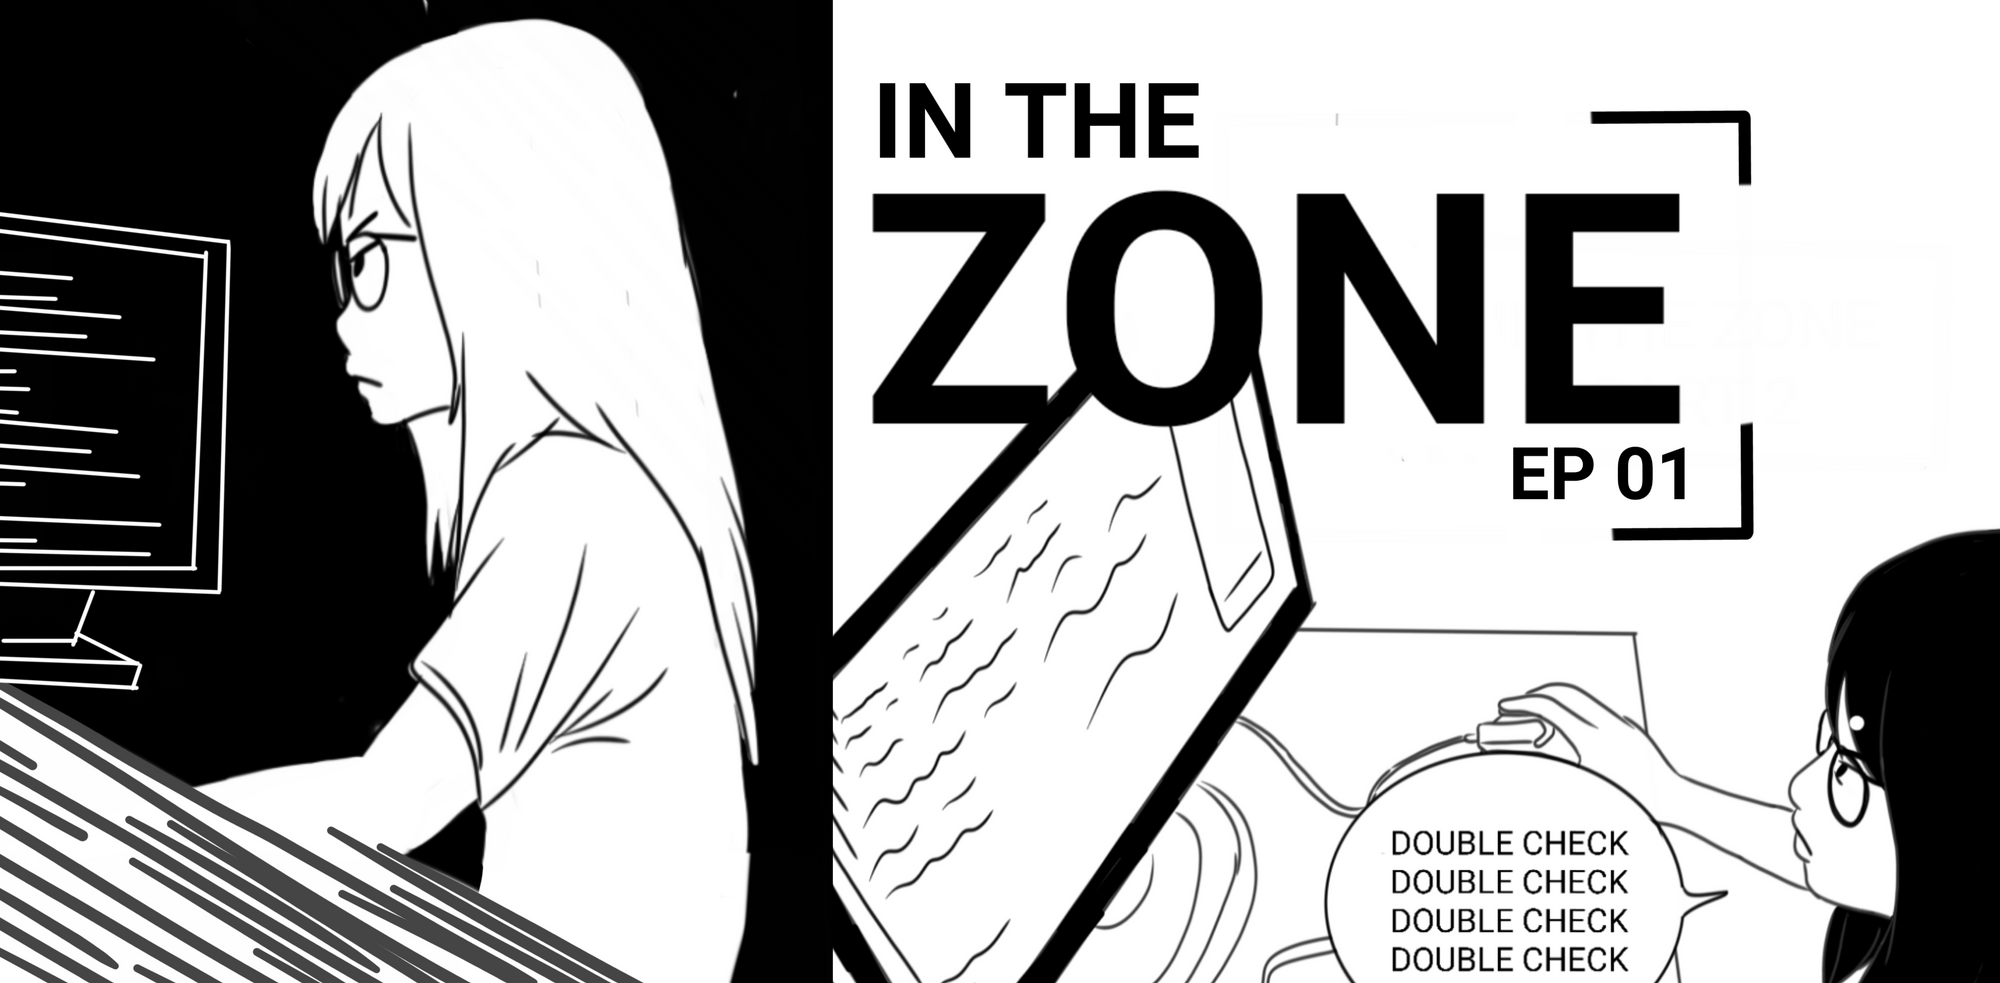 Episode 1: In The Zone